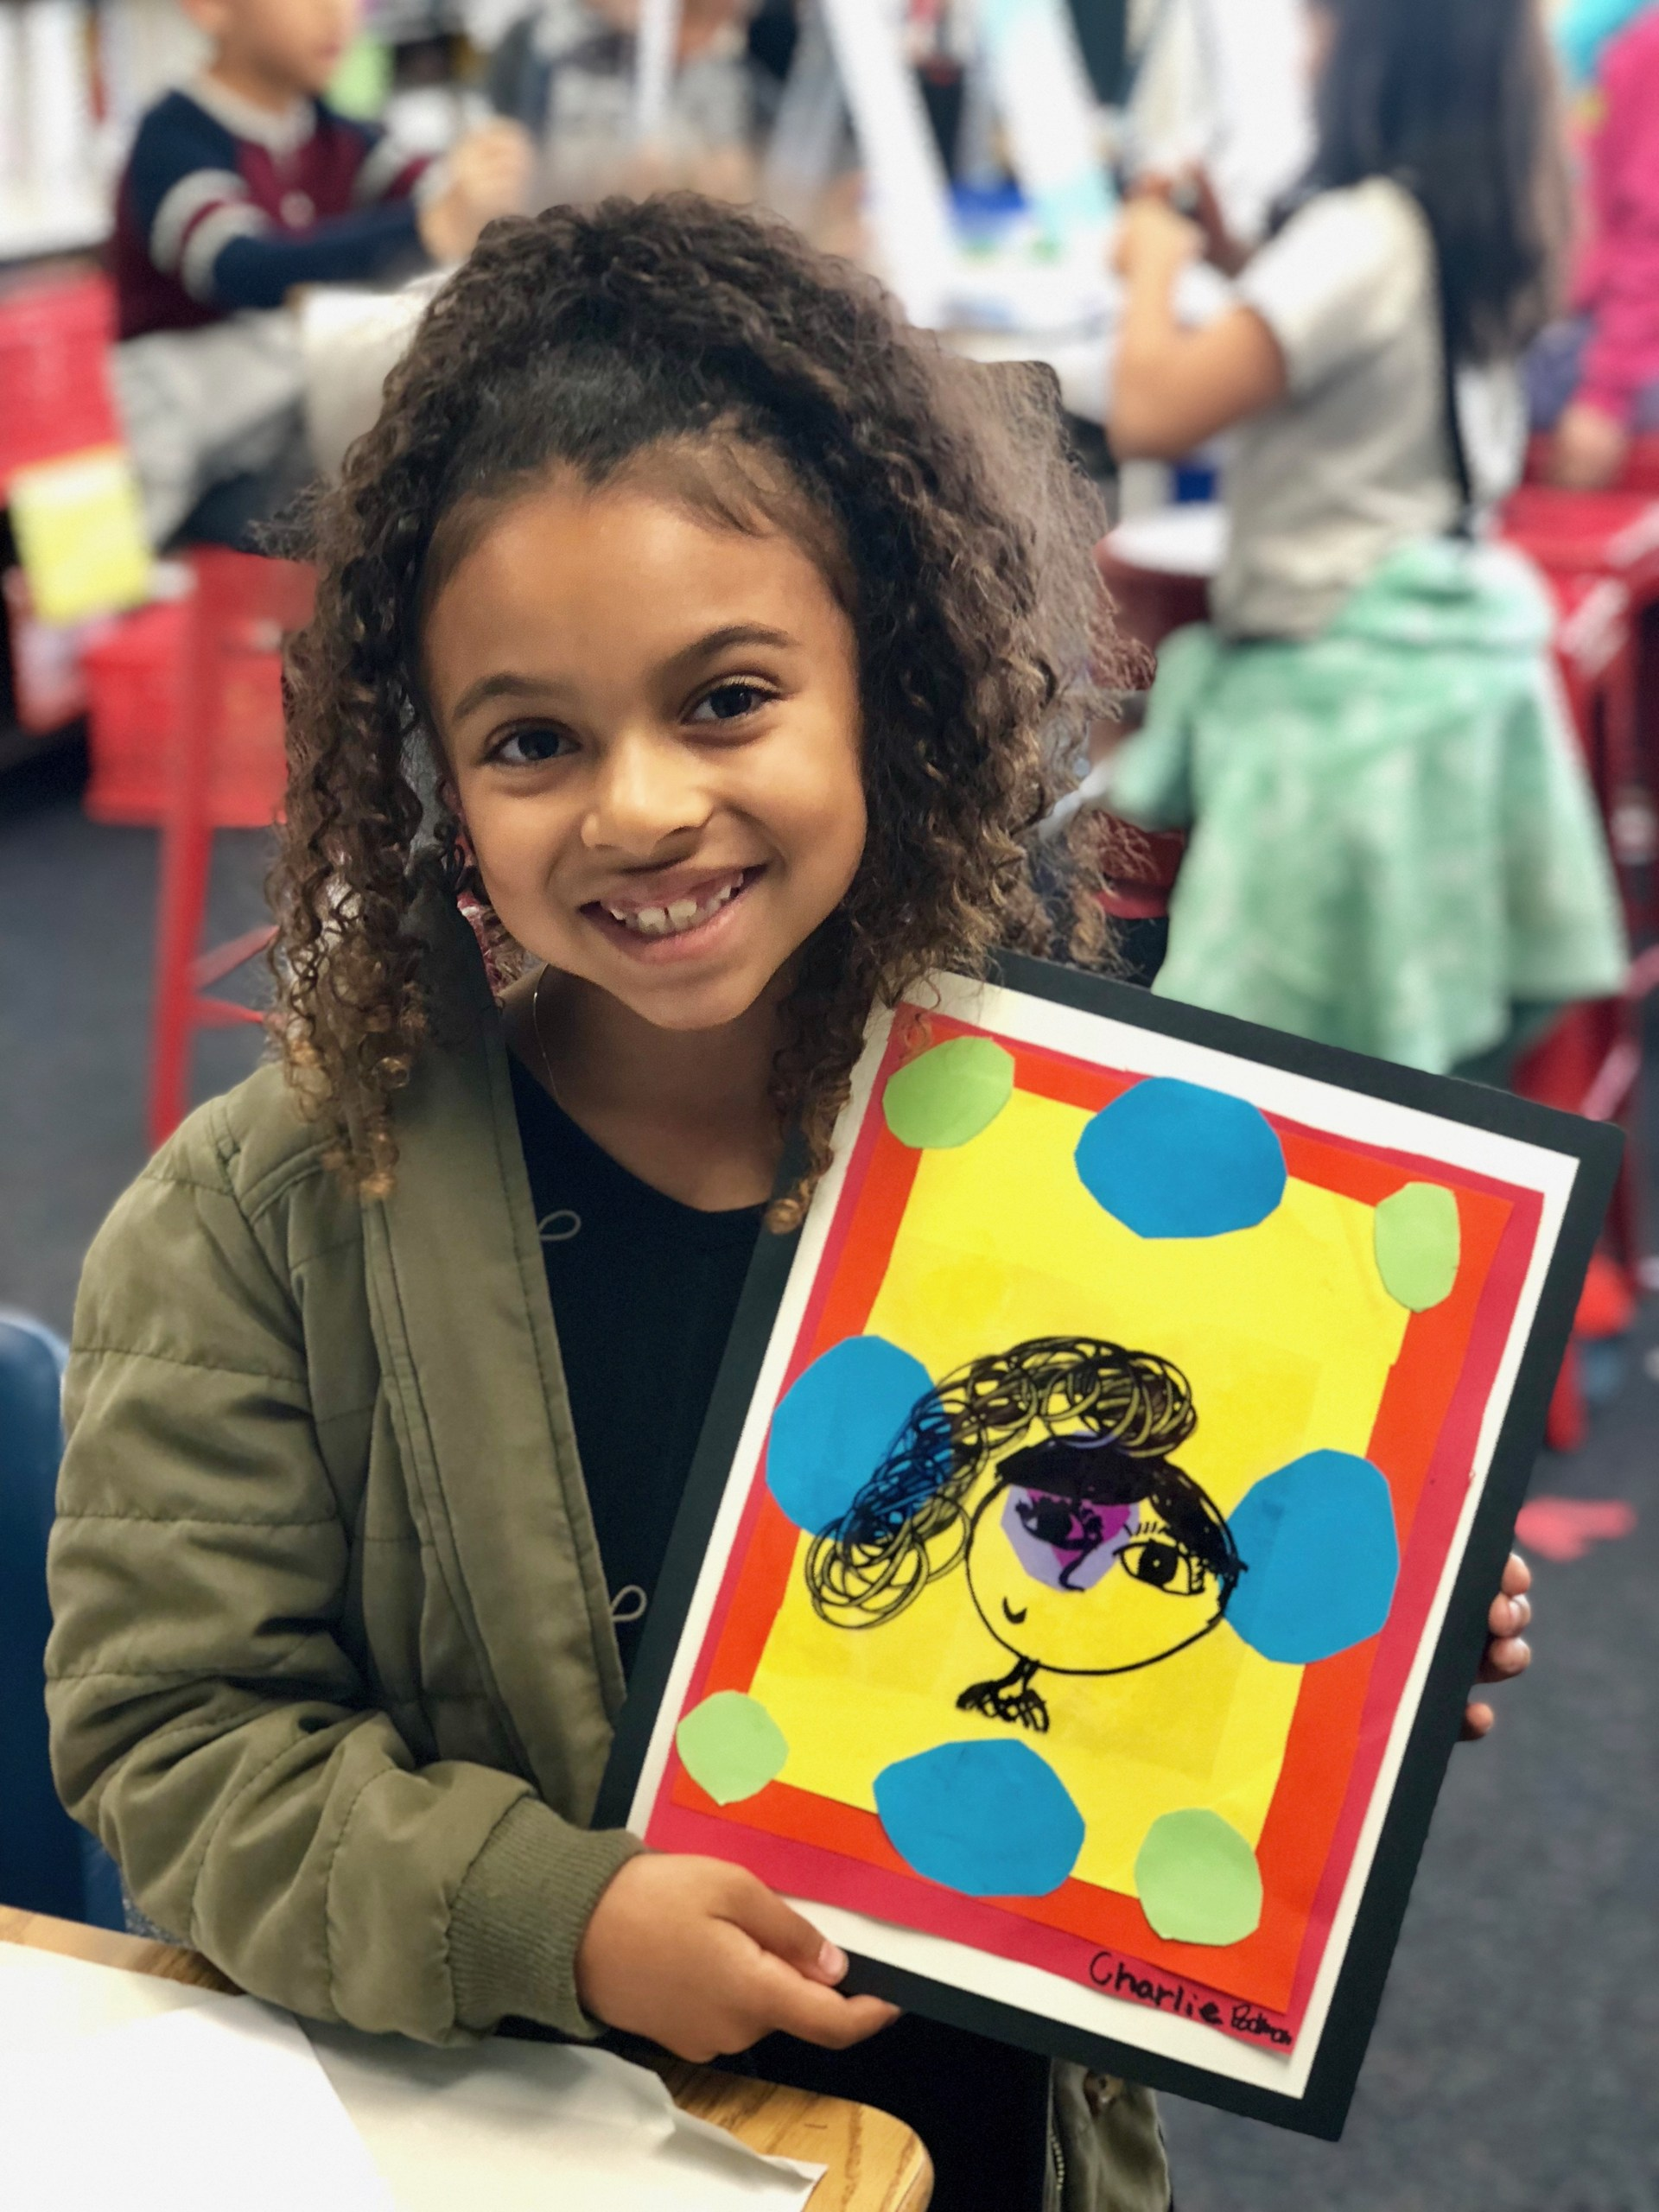 A girl showing her self-portrait on a colorful background.